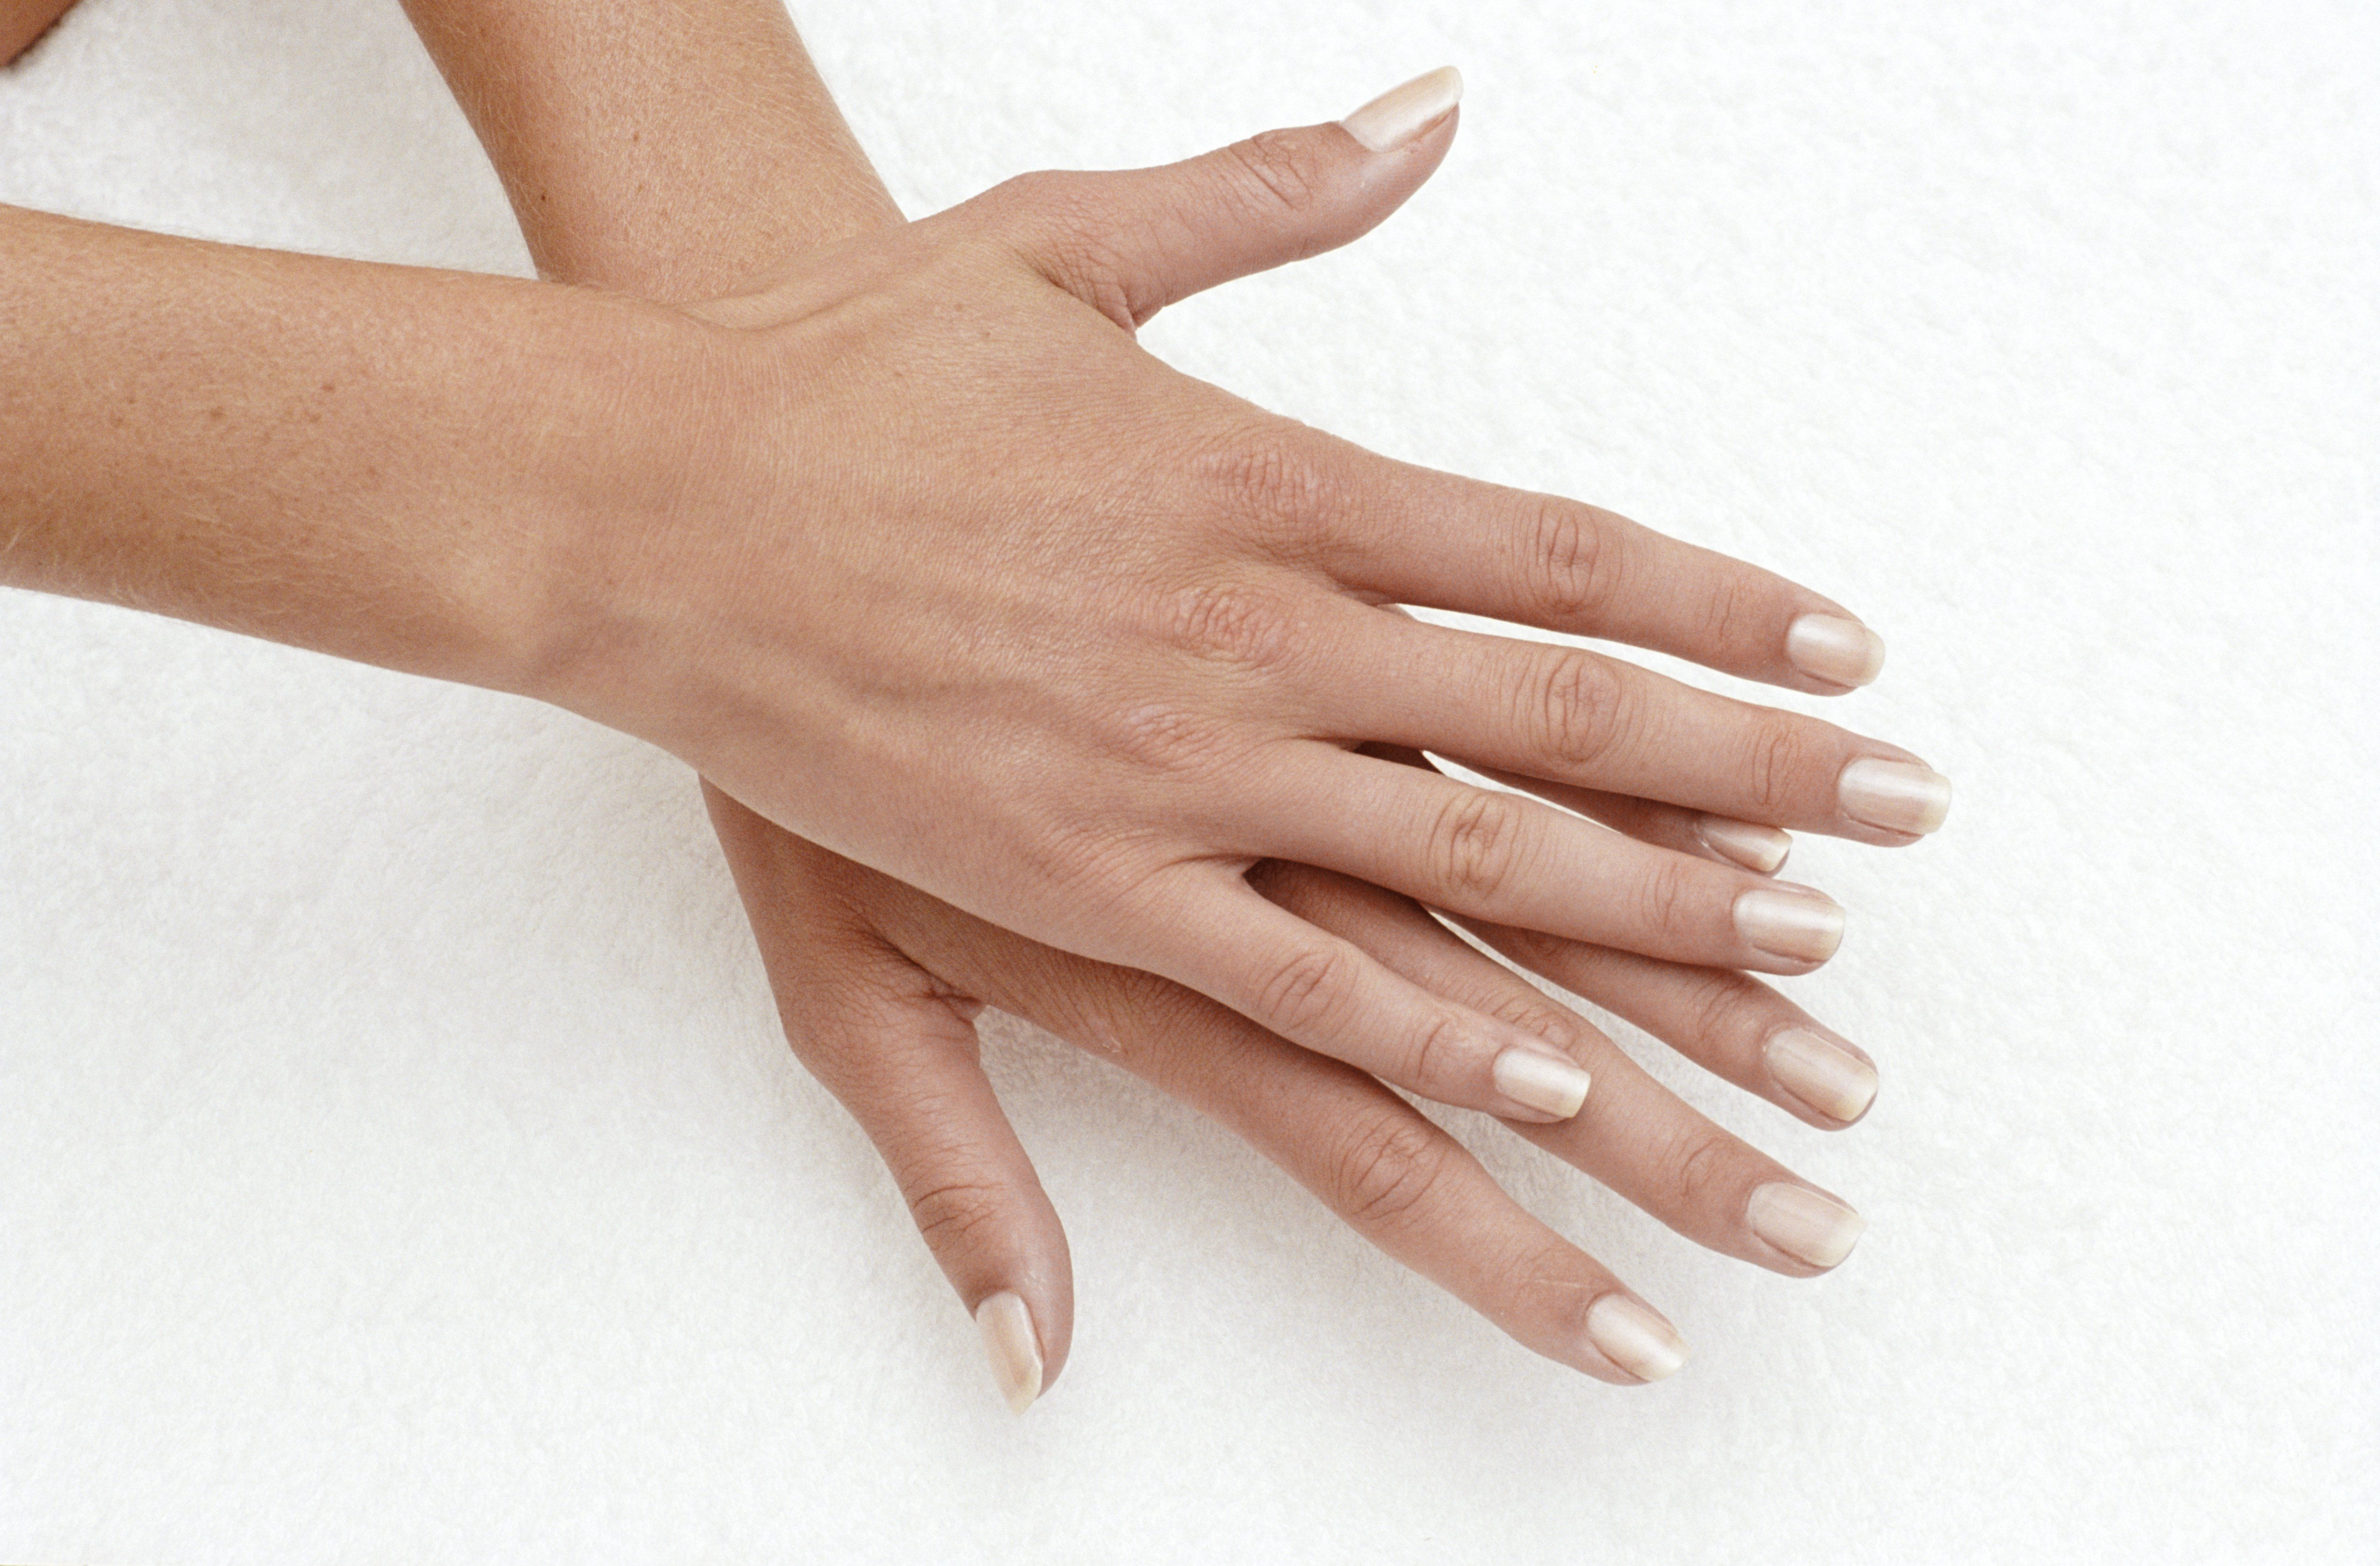 3 Vitamin Deficiencies That Can Affect The Health Of Your Nails Remove Acrylic Nails Fake Nails Peeling Nails